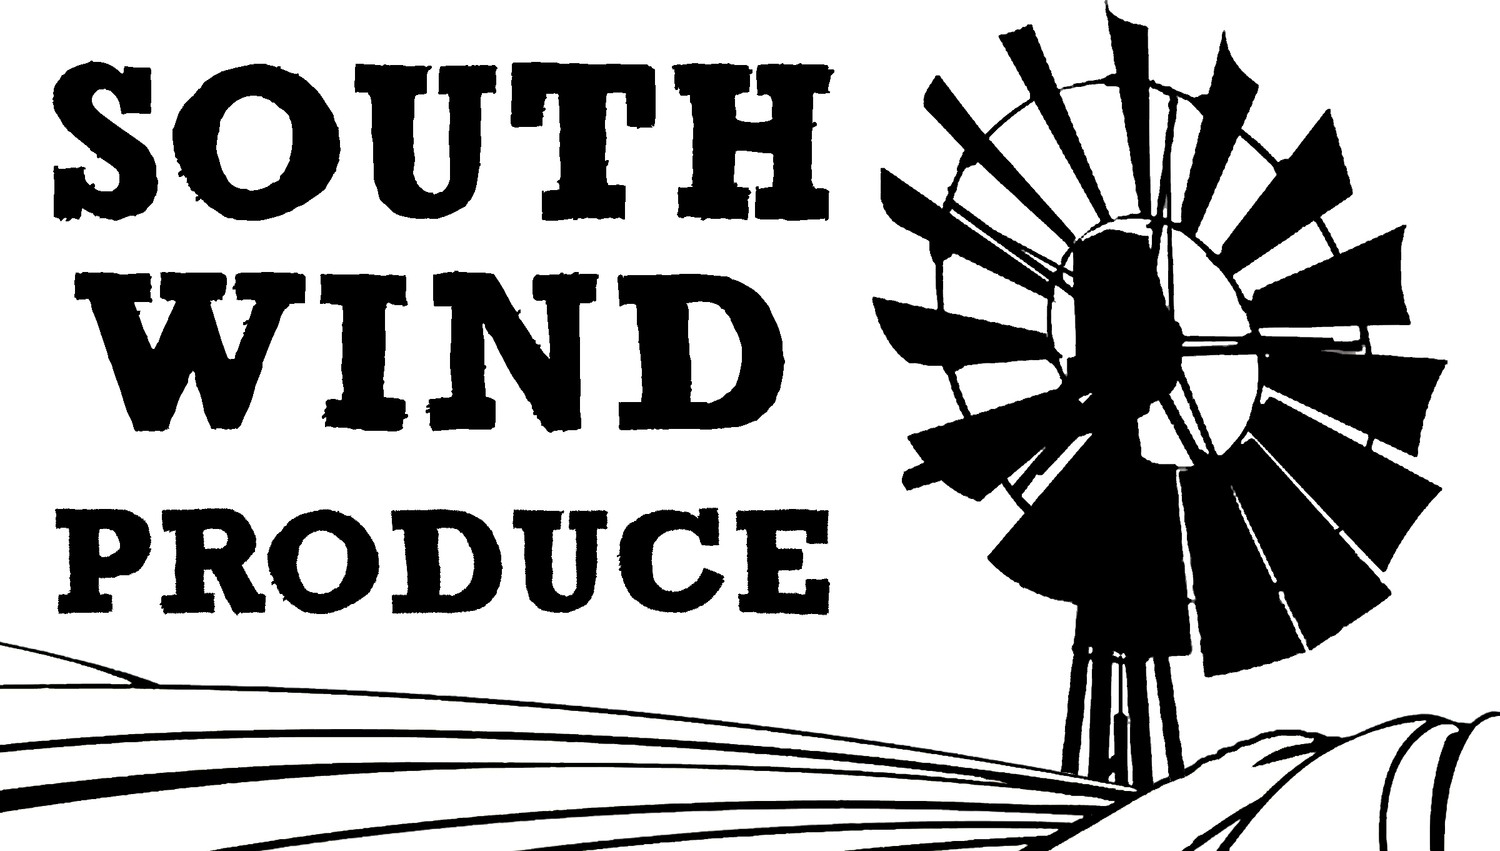 South Wind Produce